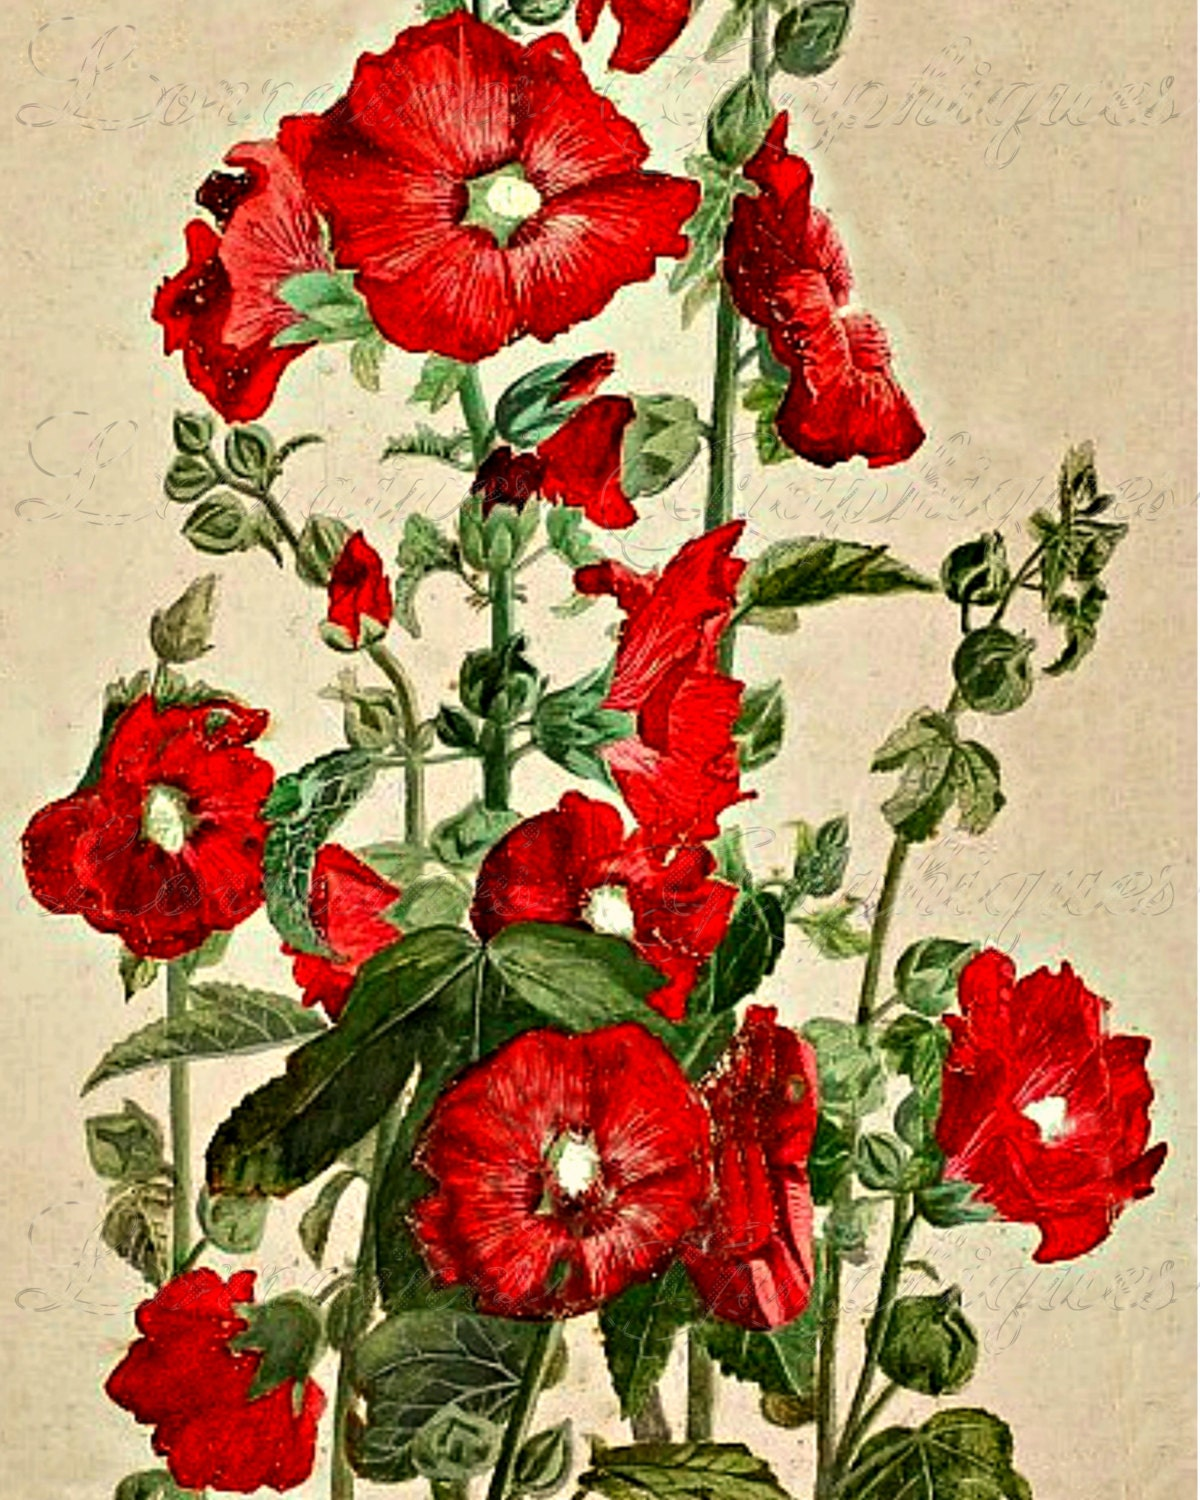 Victorian Red Poppy Paul De Longpre Floral Illustration Fine Art Photographic Print